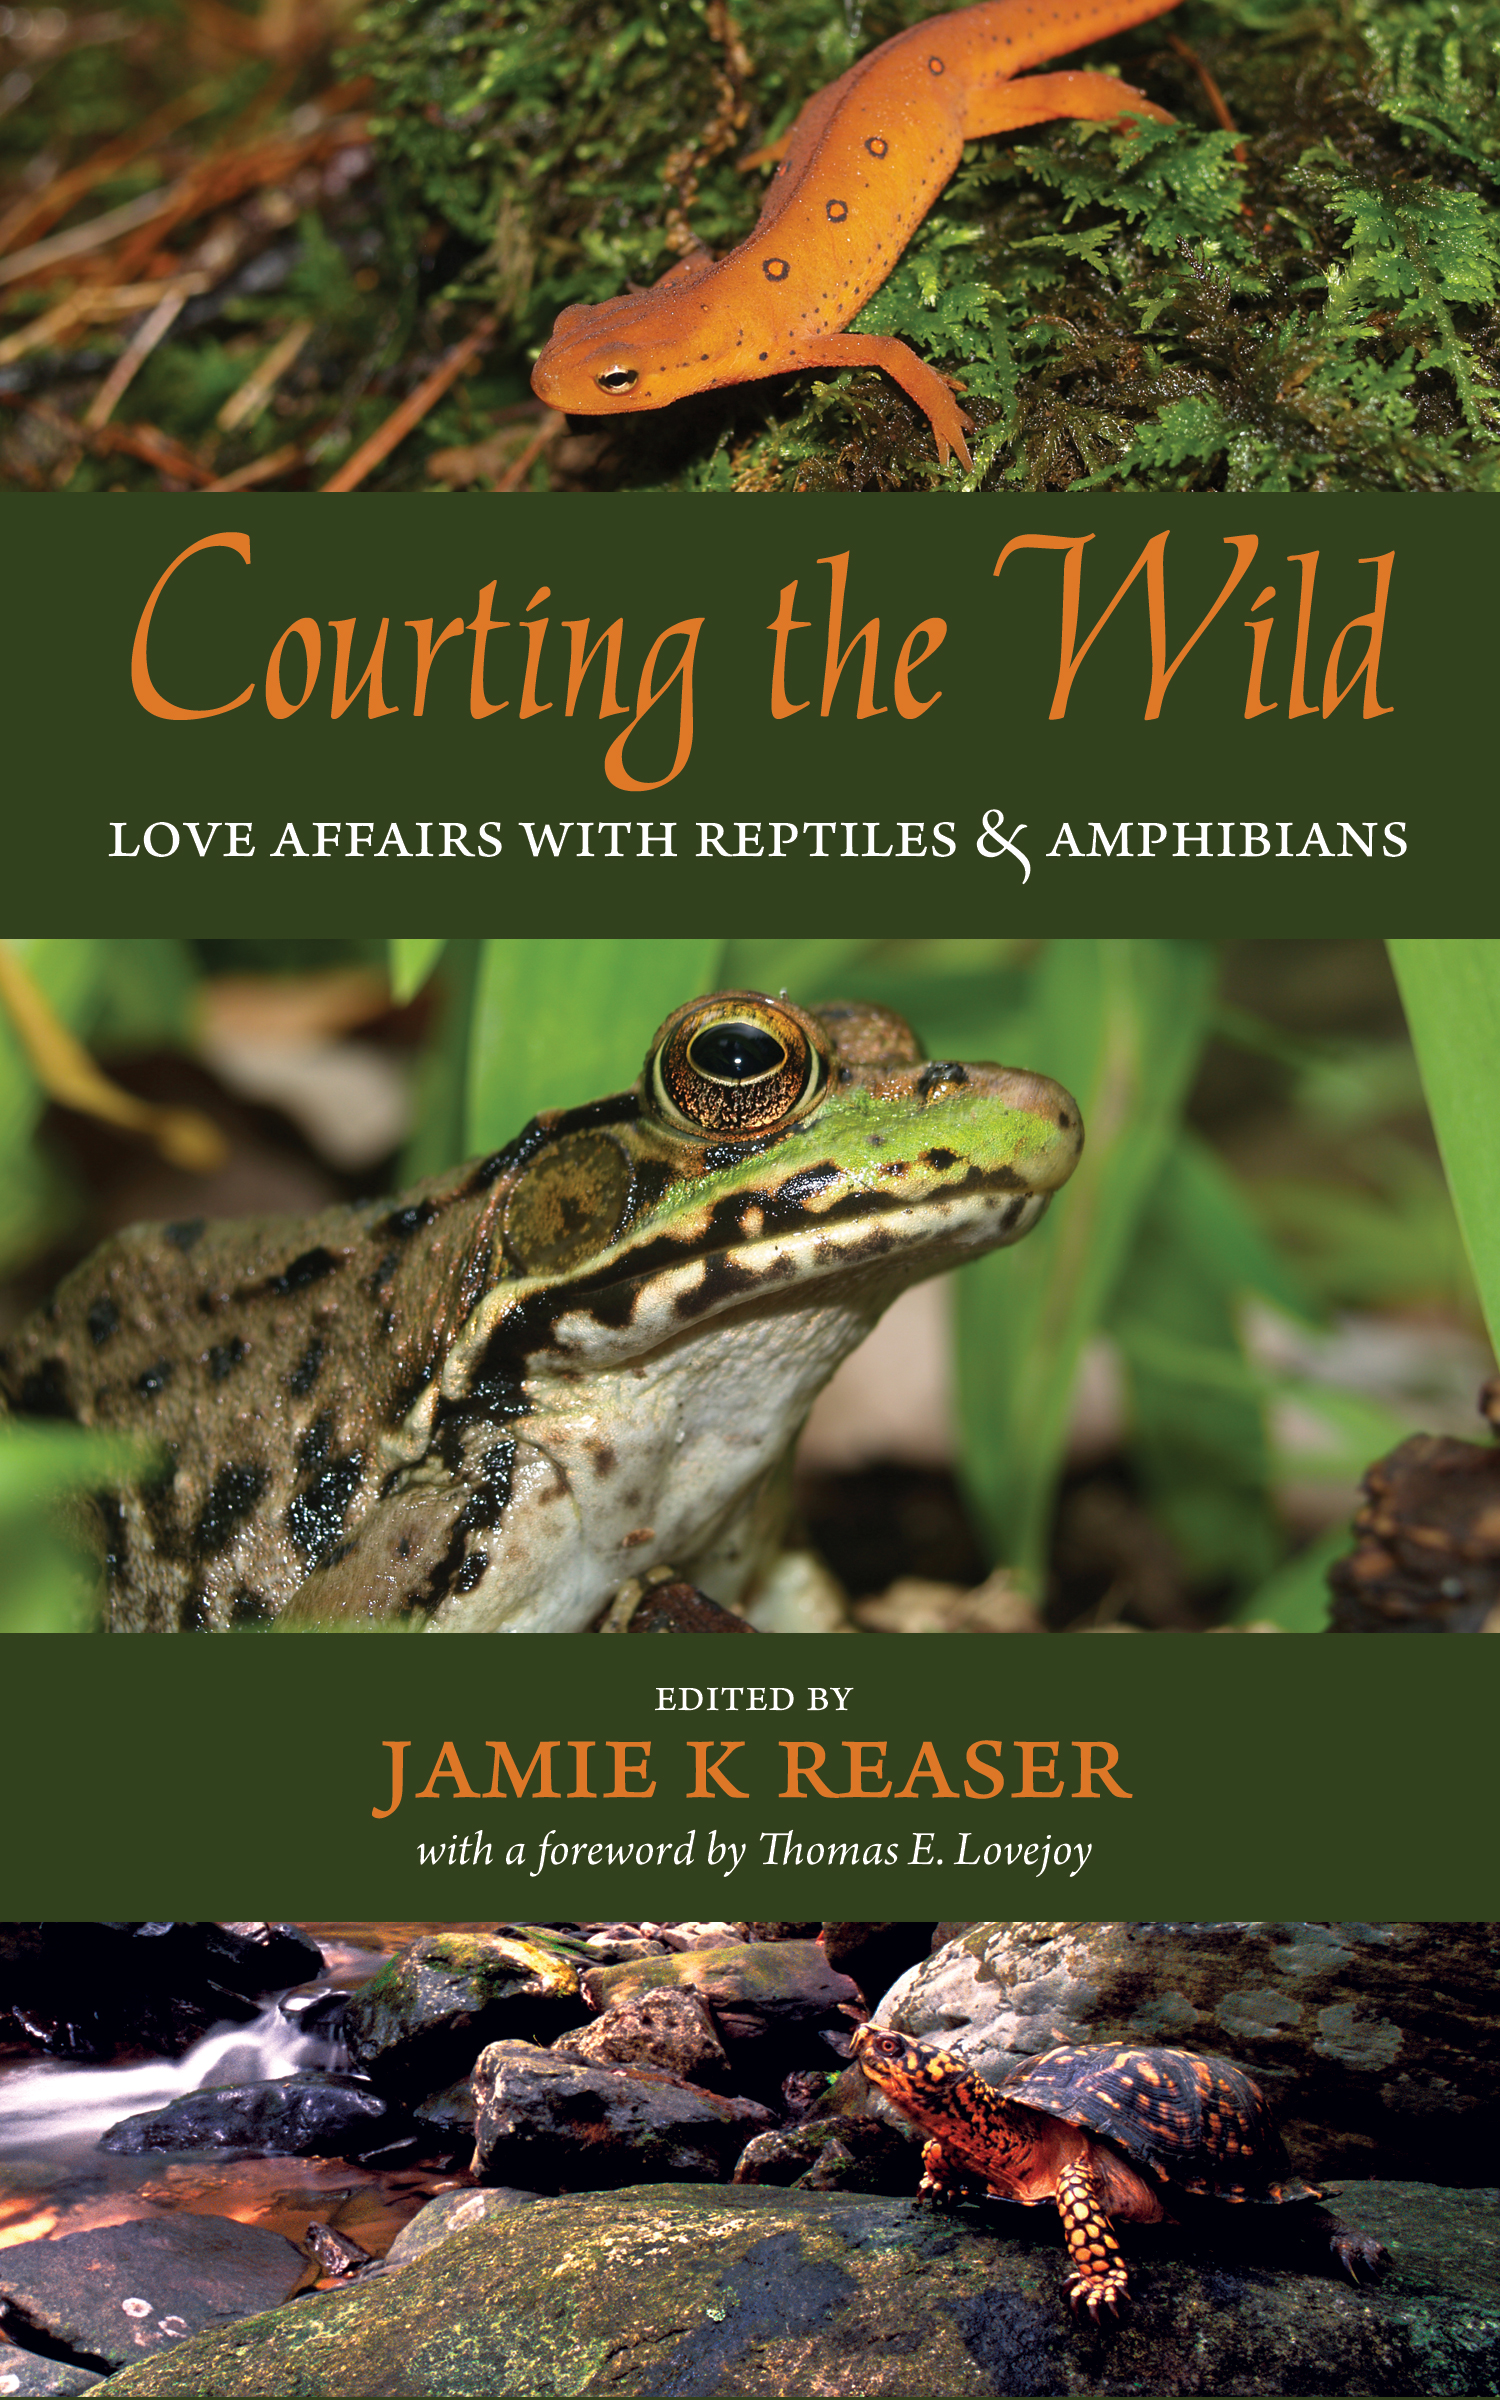 Courting the Wild: Love Affairs with Reptiles and Amphibians